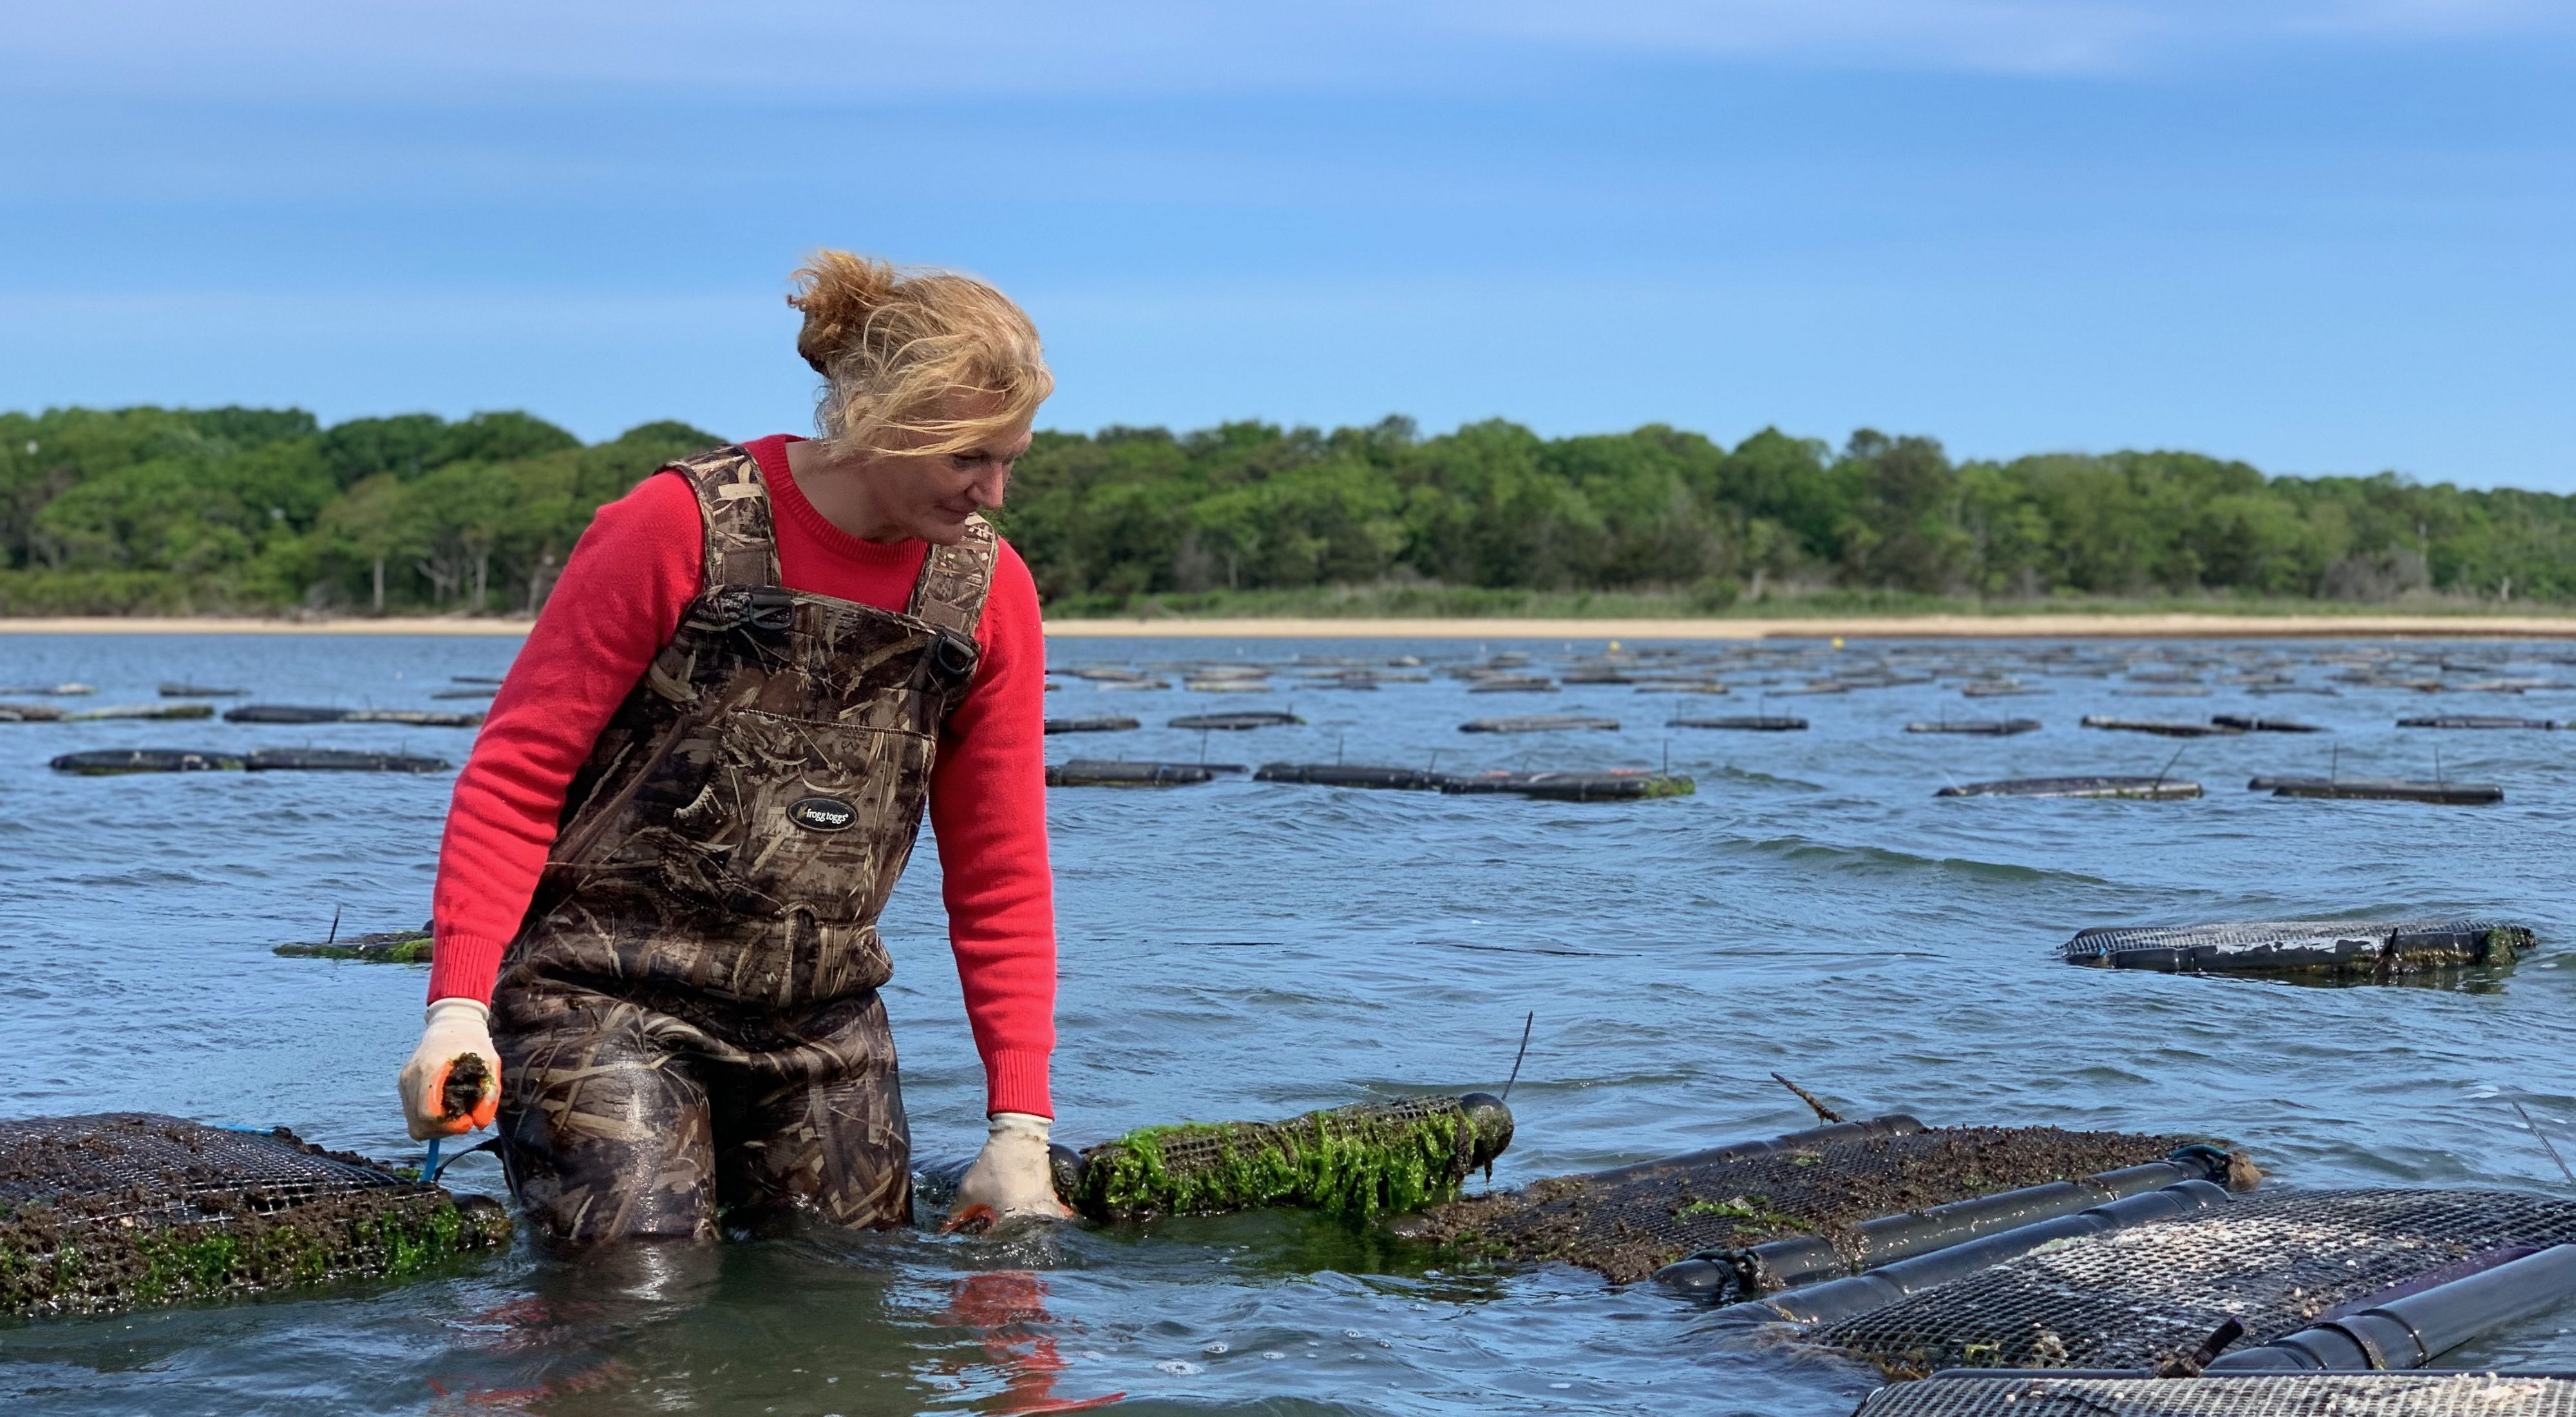 Woman on left side of screen wearing ocean waders and pink long sleeve shirt surveys an oyster cage submerged in water.